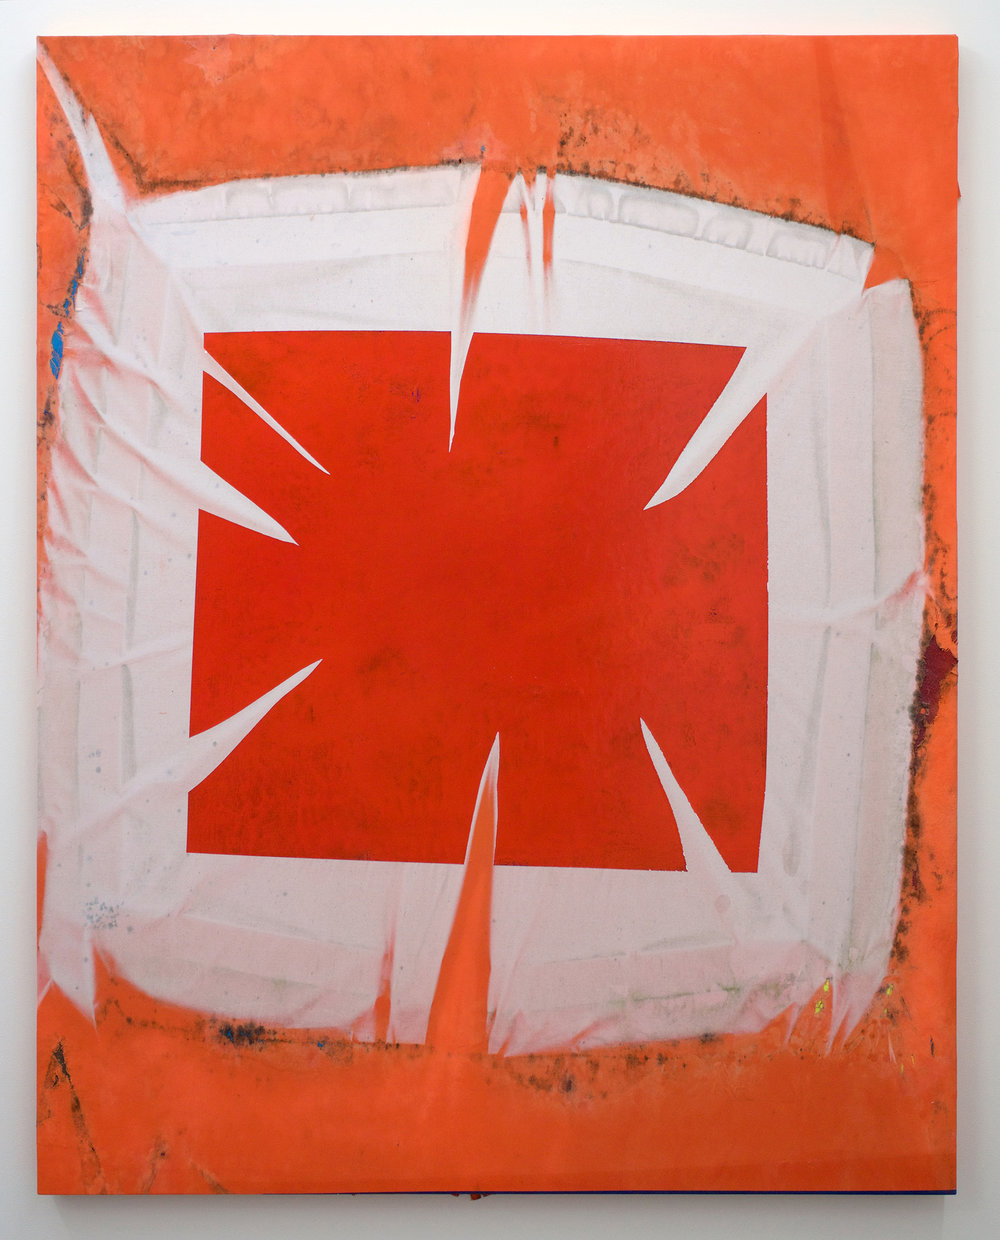 "CHRIS DUNCAN   Red On Orange (Fall 2016 – Spring 2017) six-month exposure/Oakland,  2017 ,  sun, time and acrylic on fabric, 60"" x 48"""